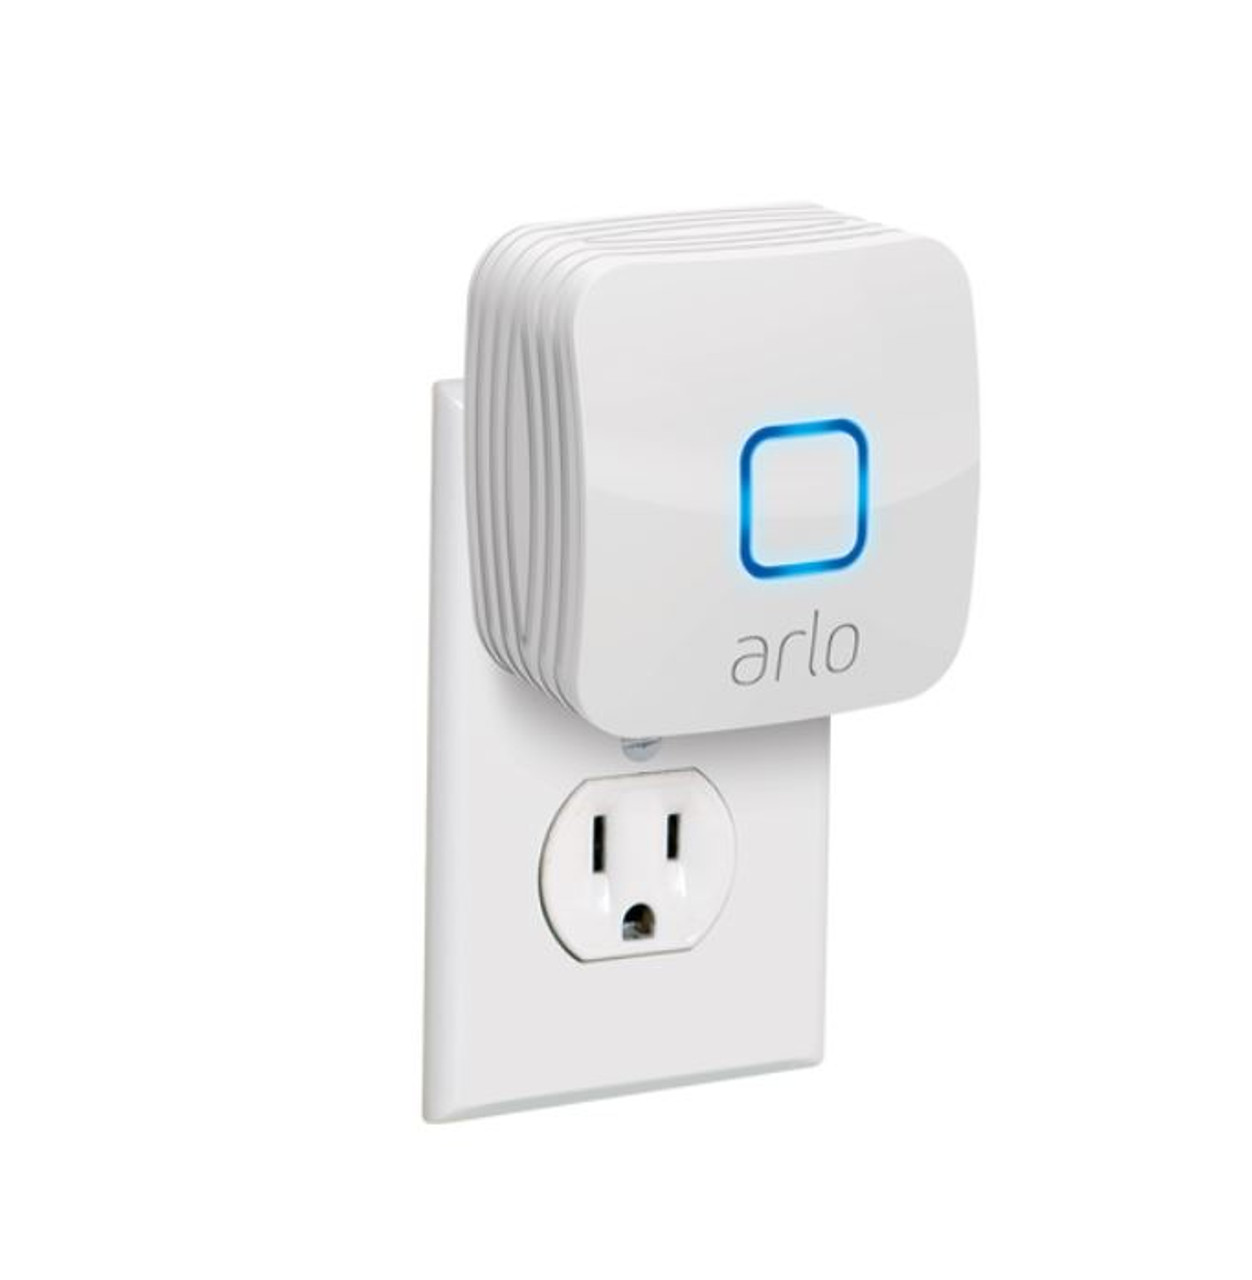 Arlo ALS1102-100NAS 2 Pack Security Lights System -Wire Free - Rechargeable